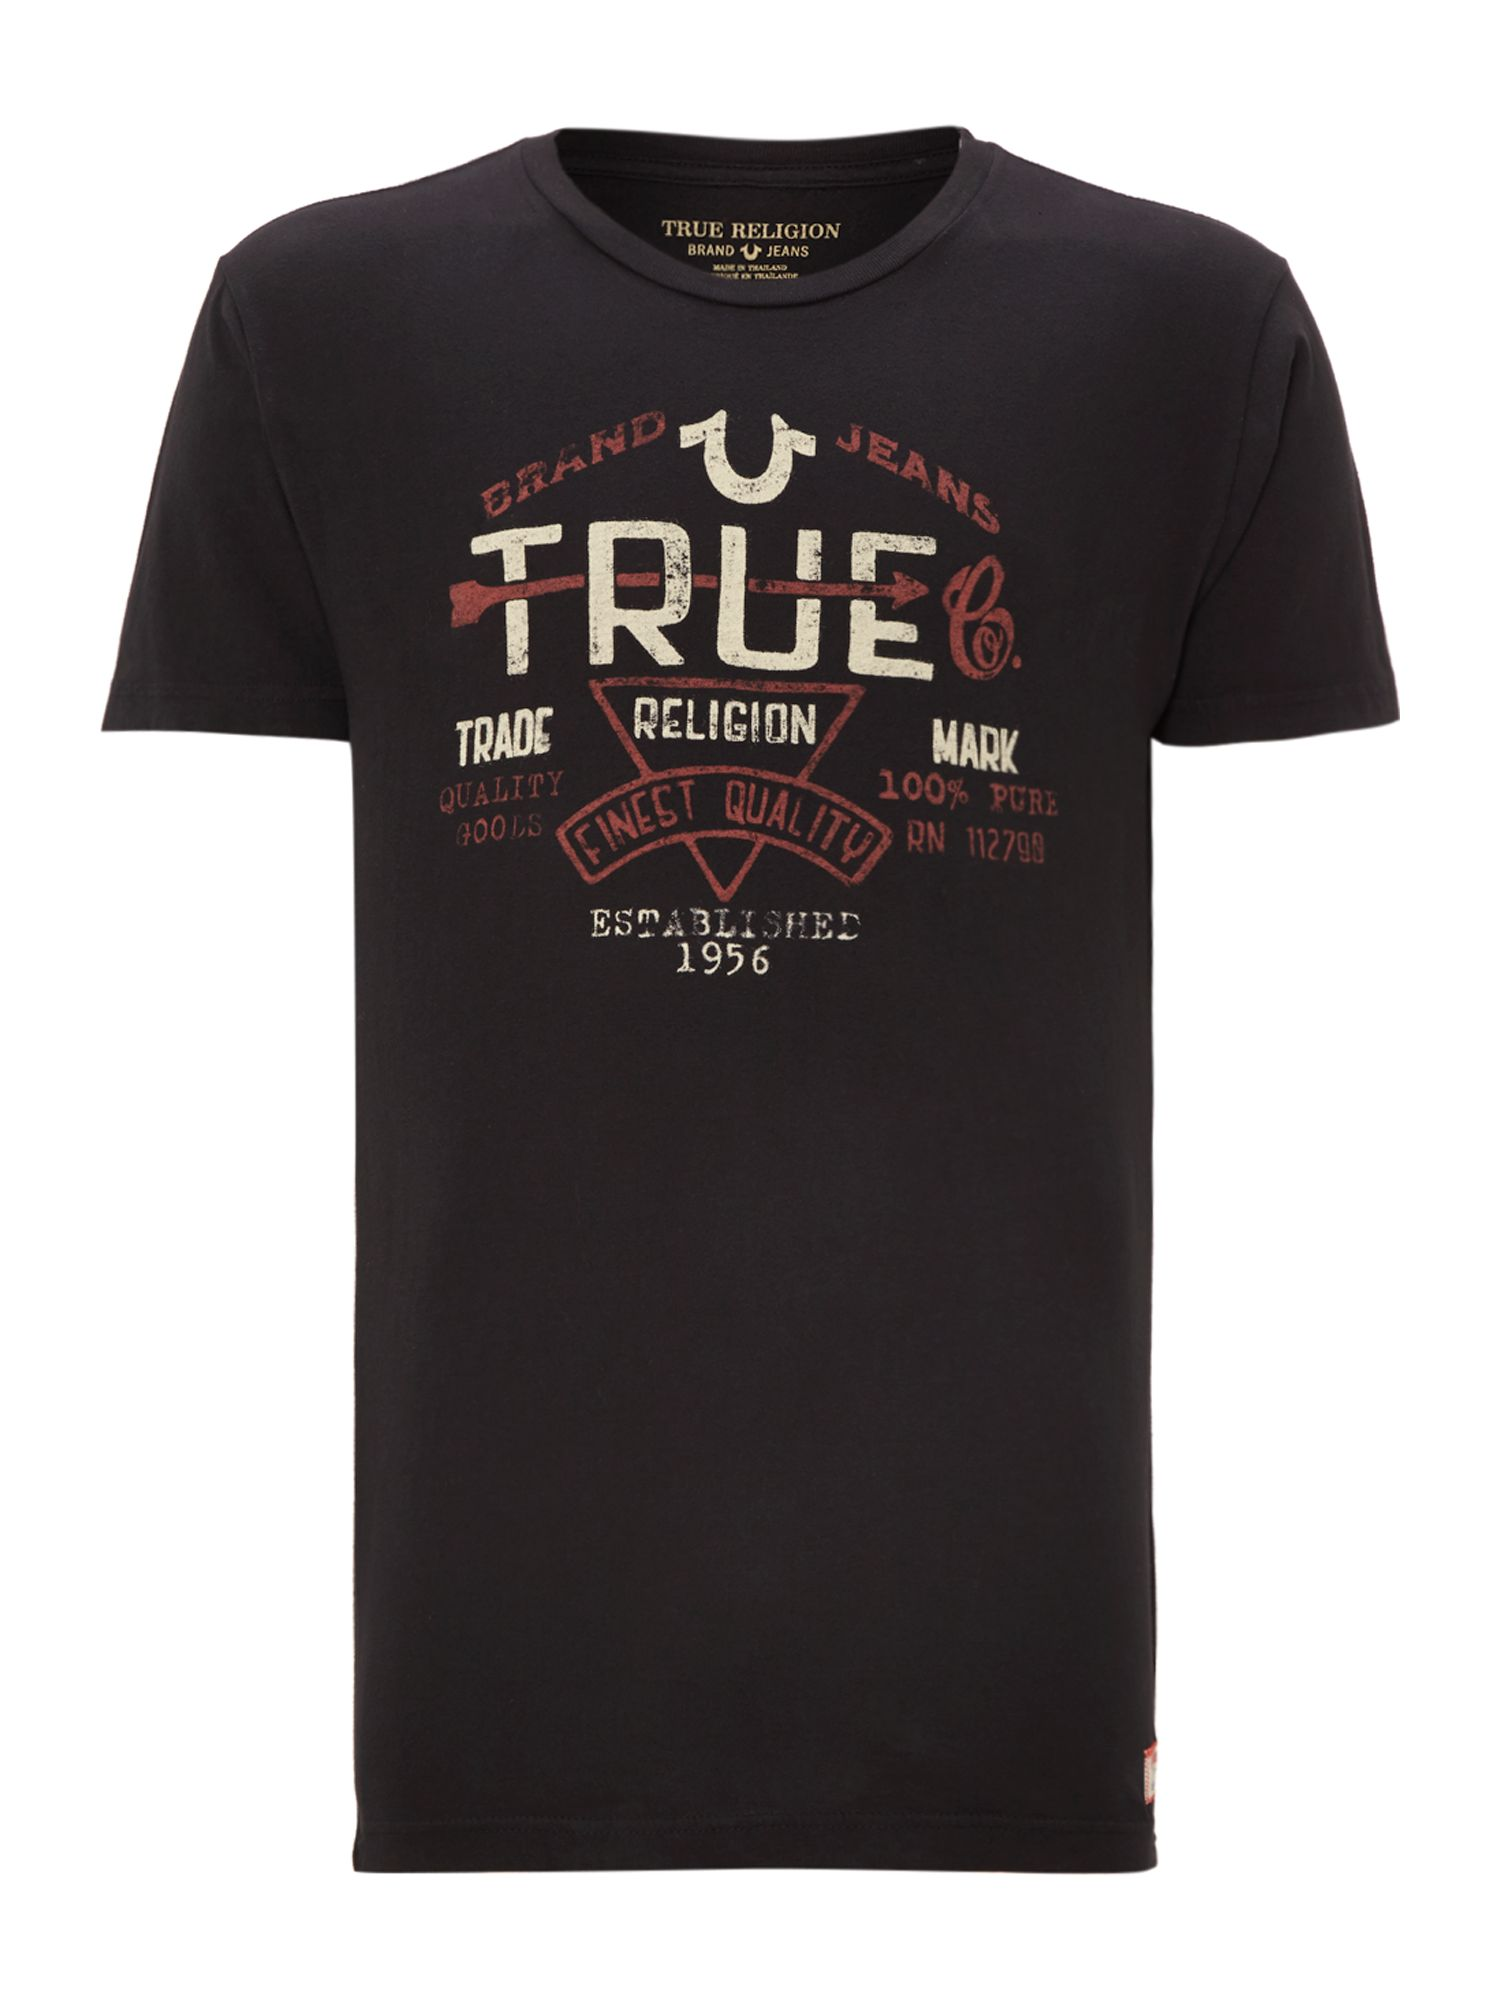 Crew neck arrow true print t shirt